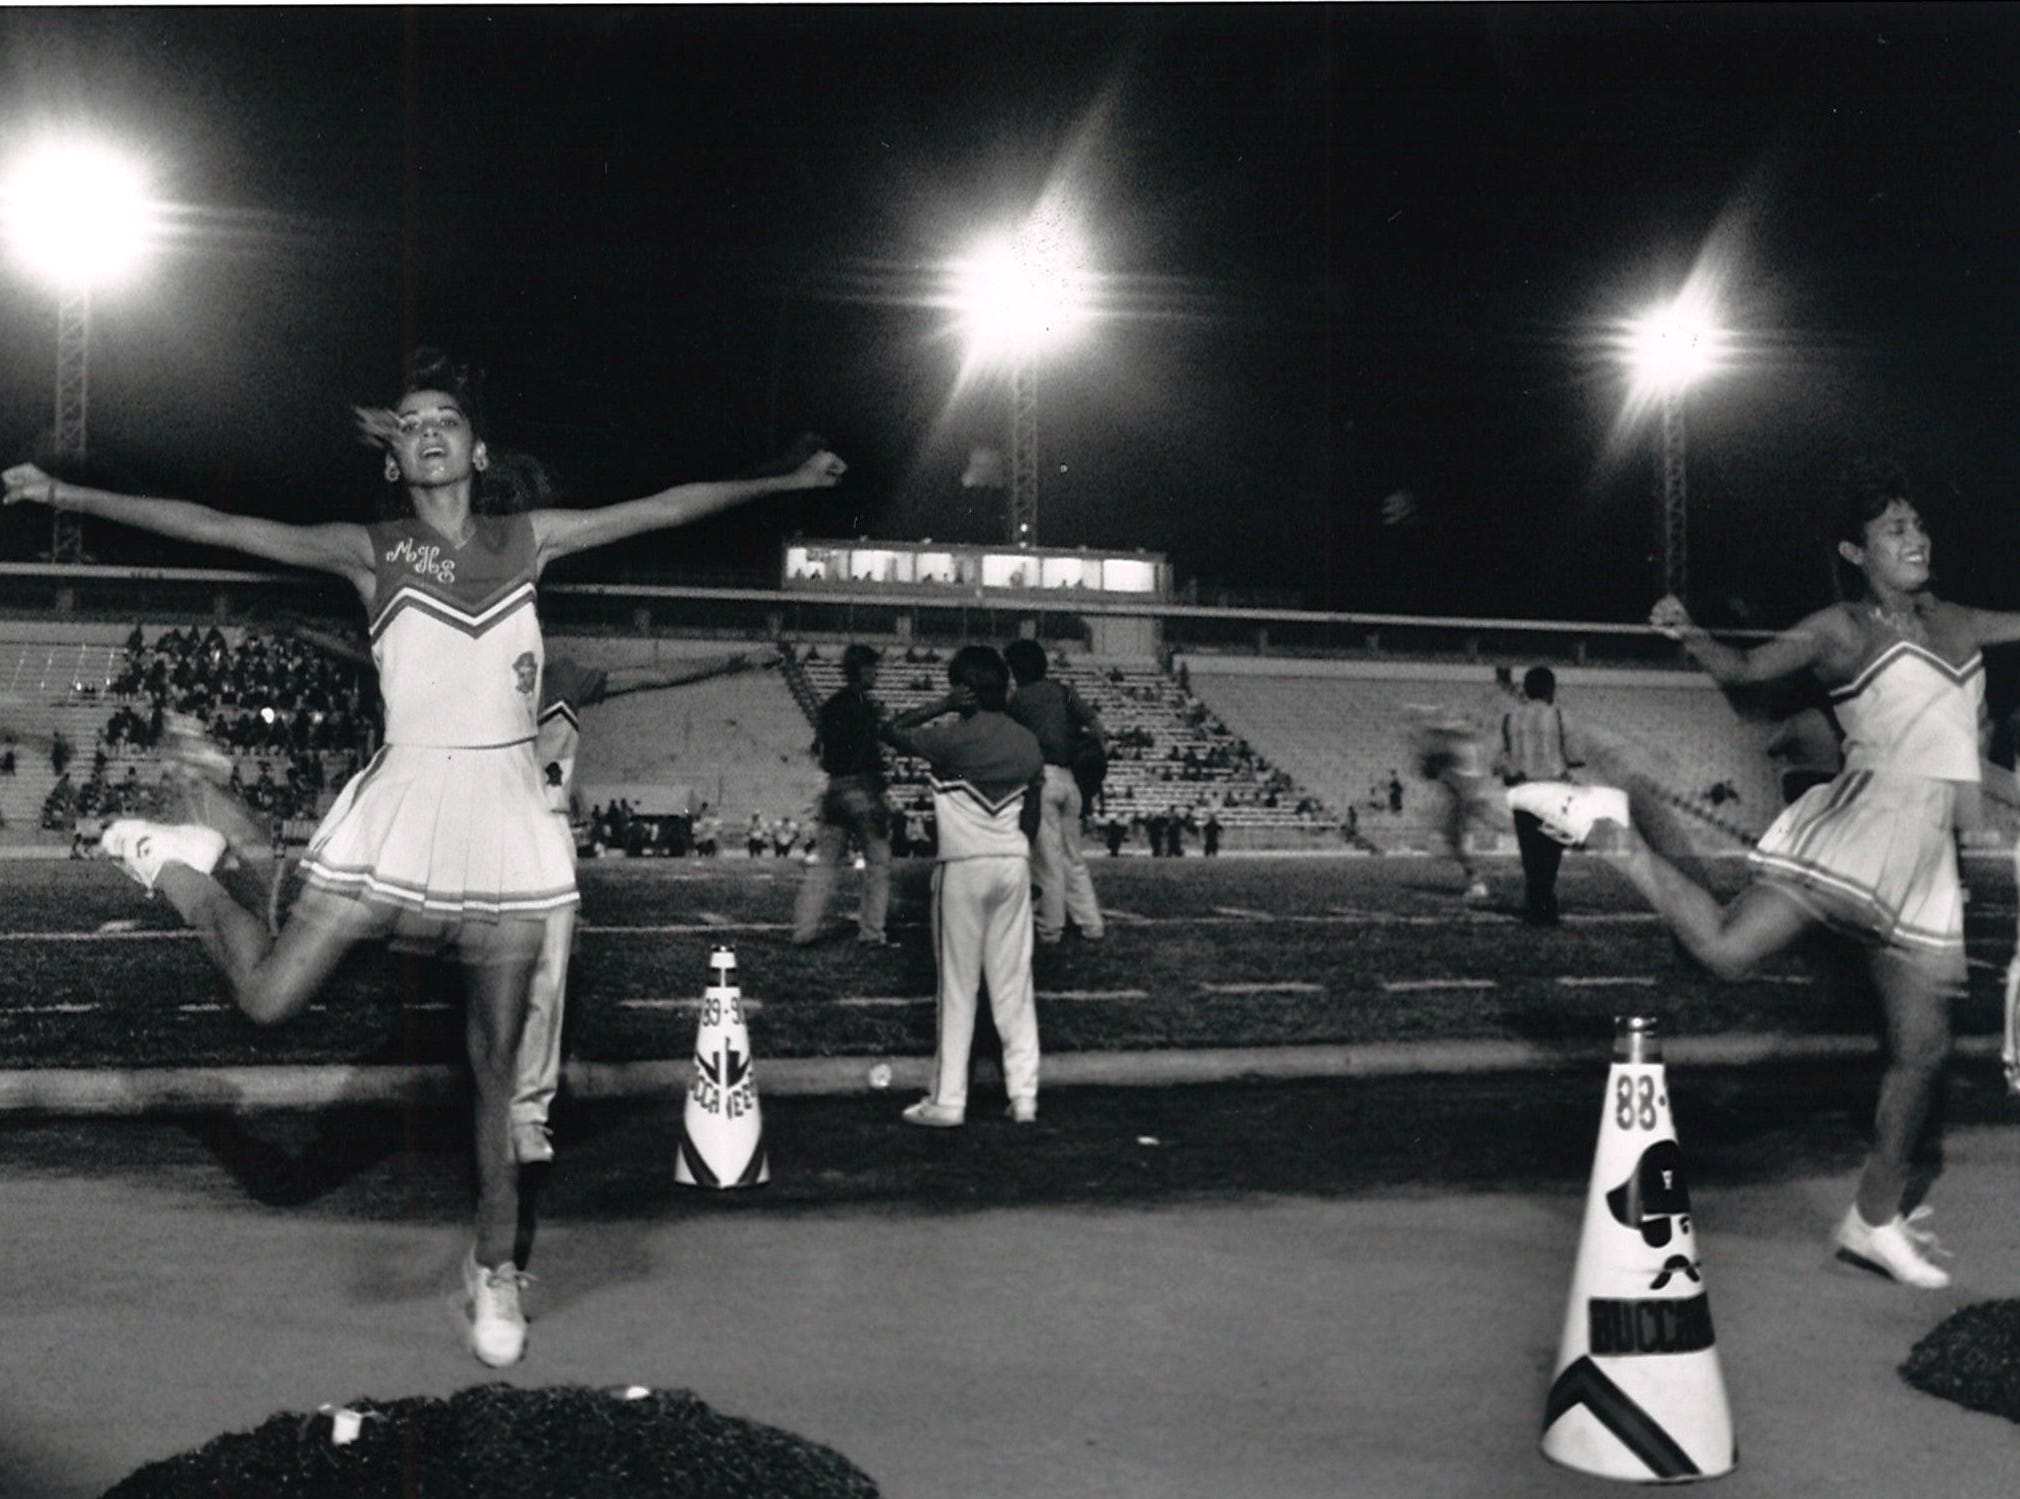 Belinda Ramirez (left) and Cindi Cardona (right) cheer for Miller before the game against Victoria Stroman on Sept. 28, 1989.